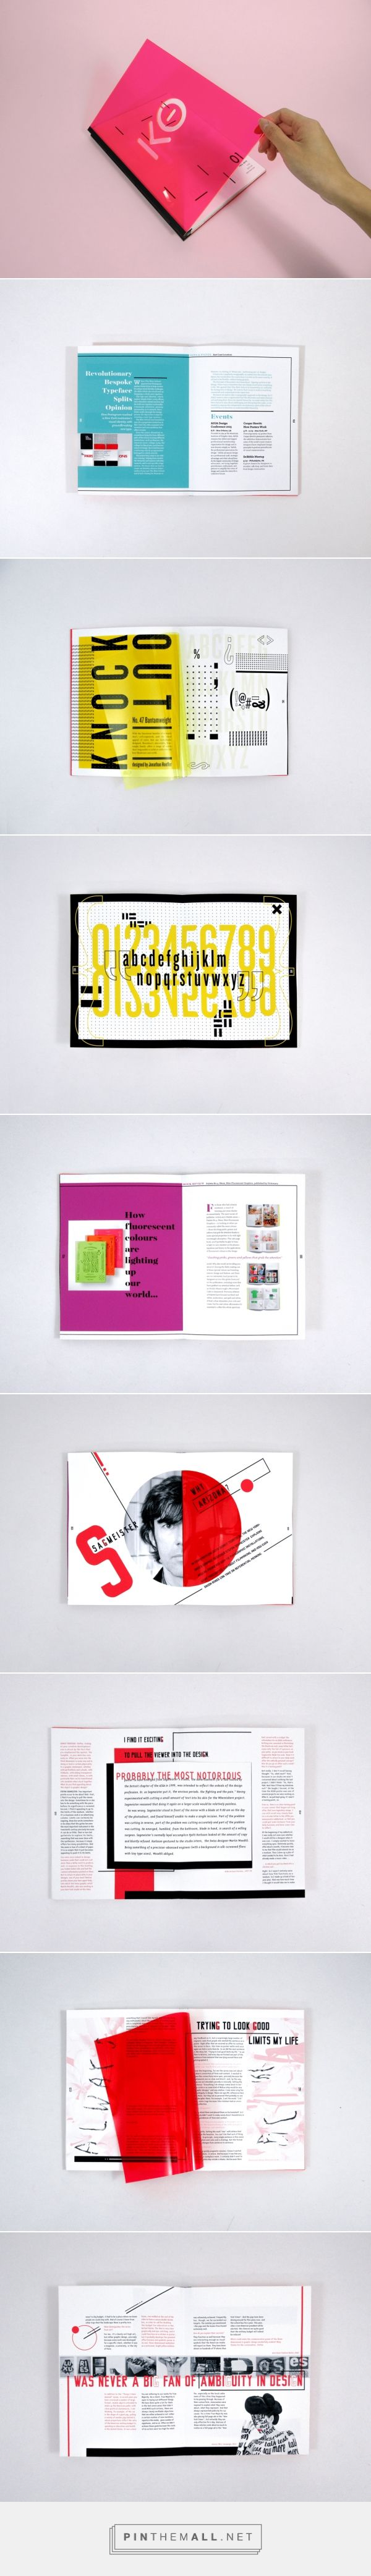 405 Best Book Design Images On Pinterest Editorial Design Page  # Muebles Koyga Vigo